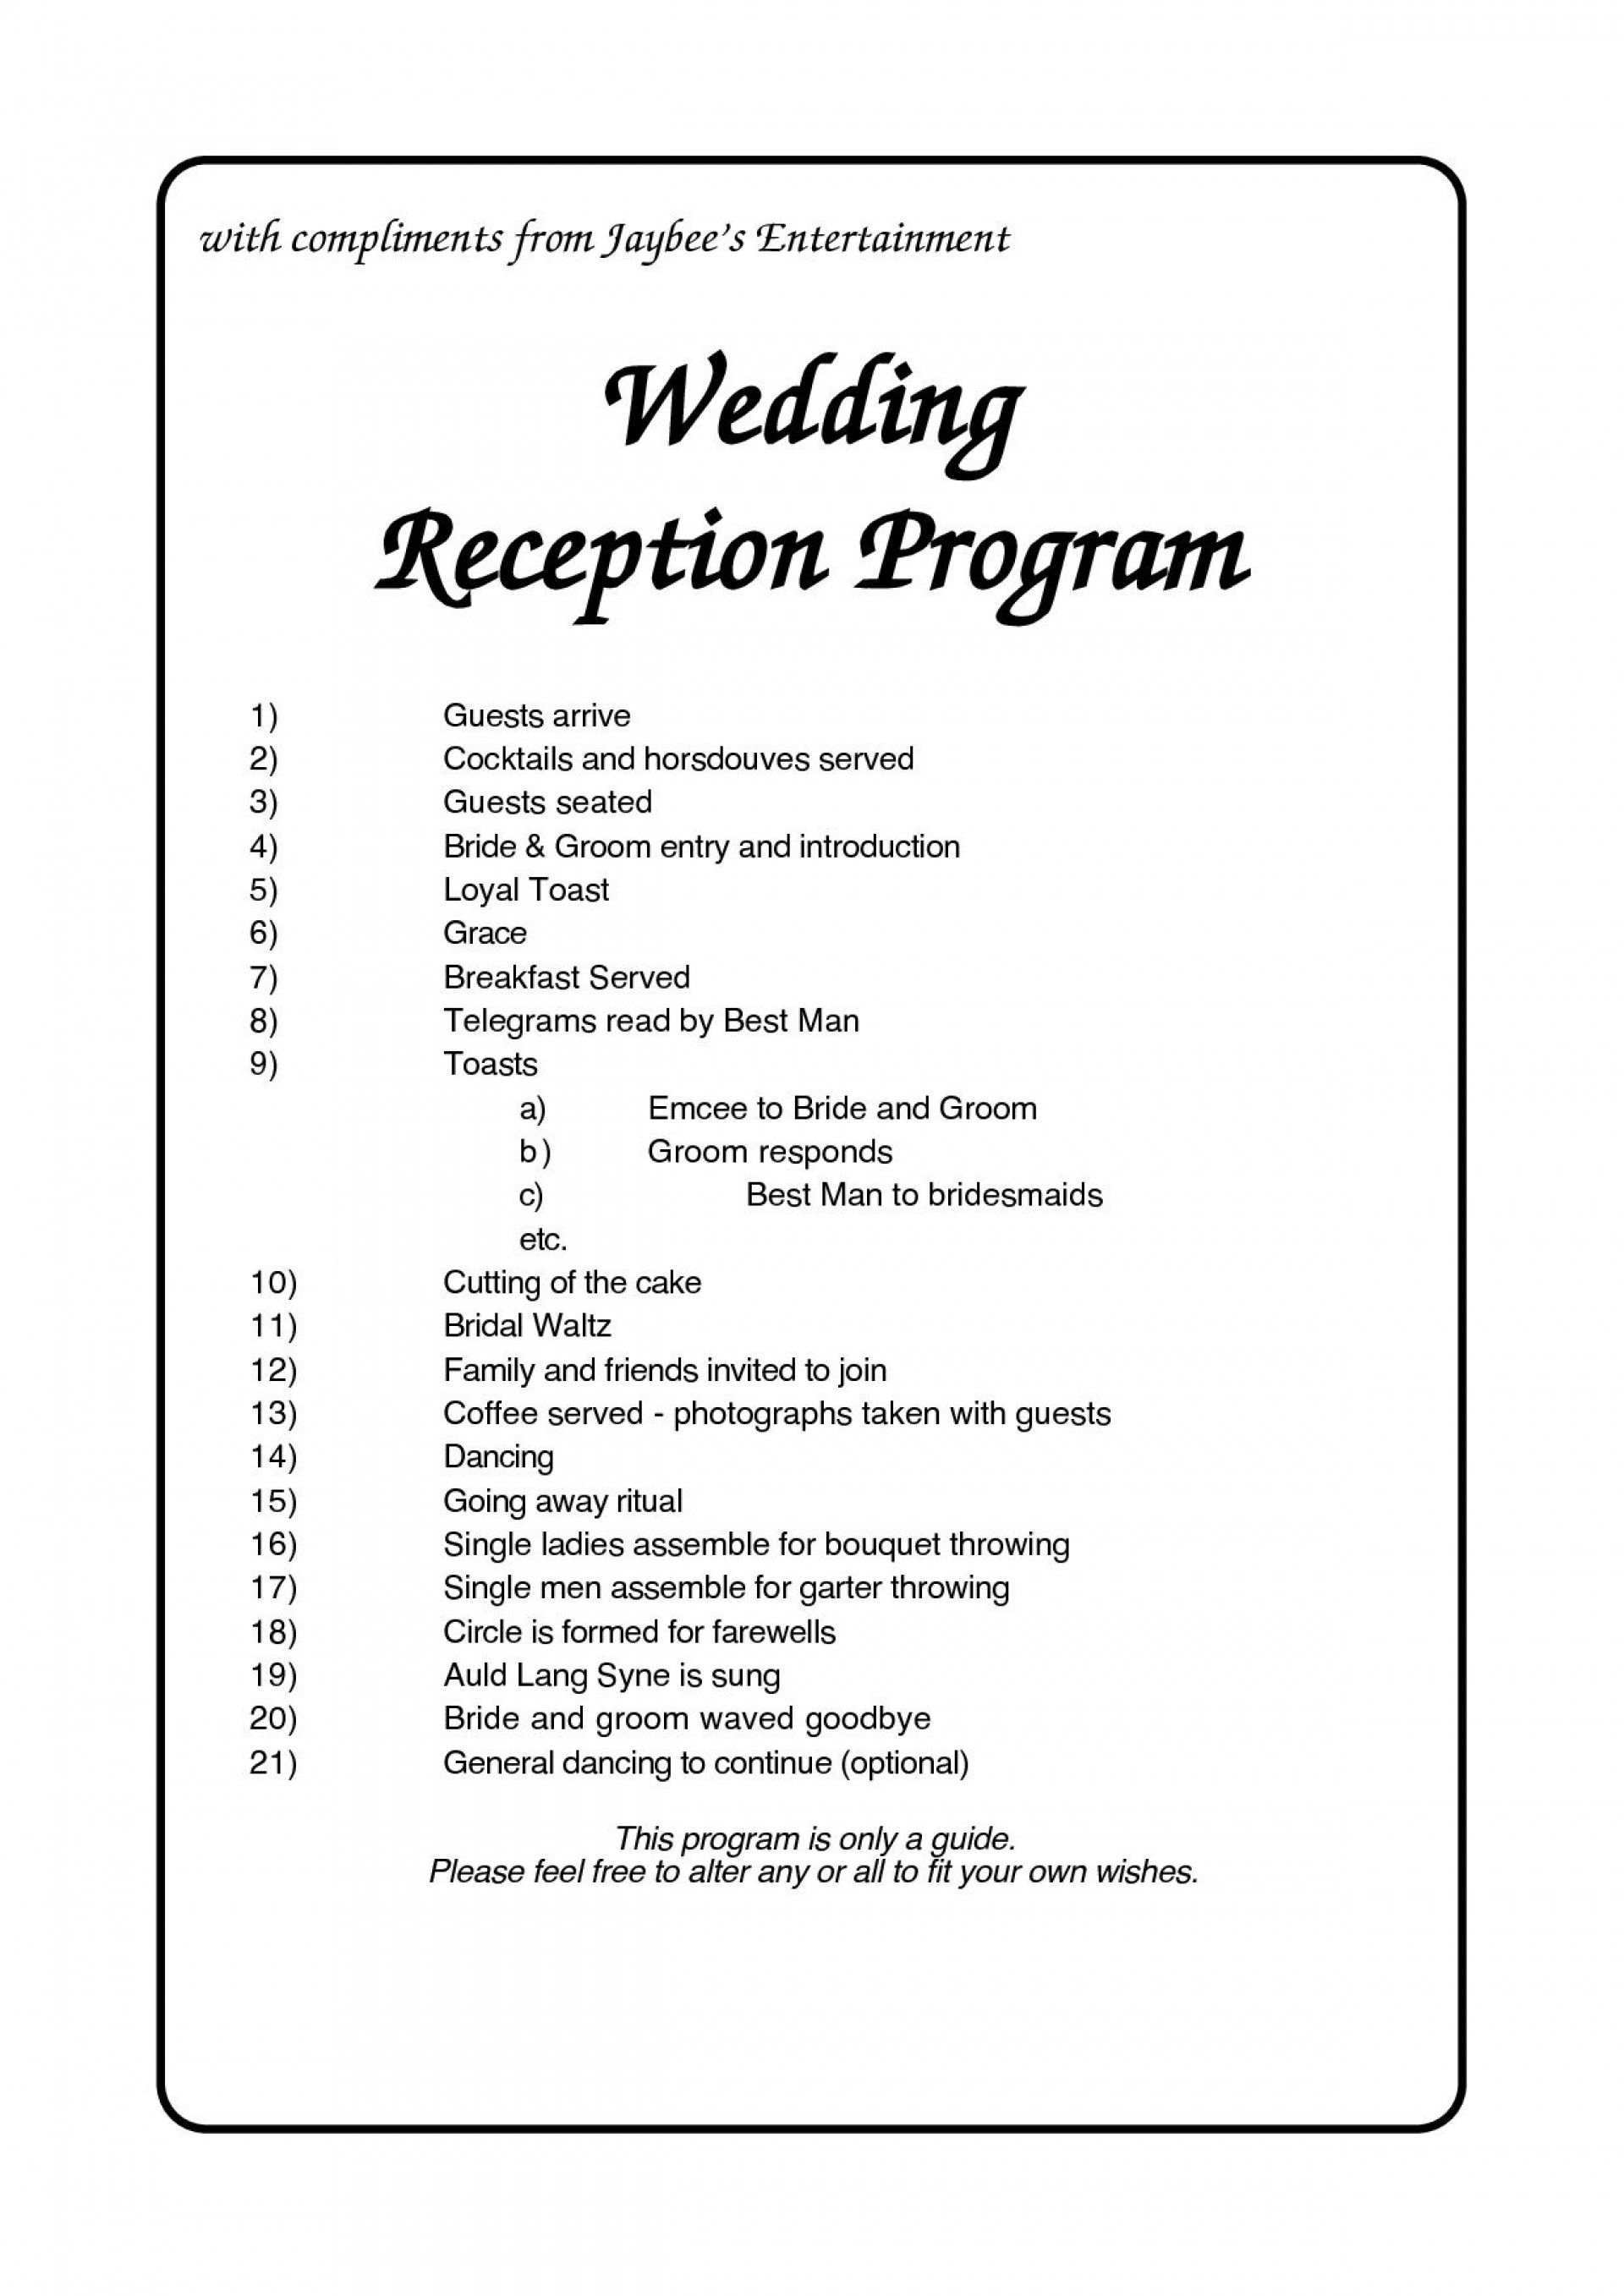 004 Exceptional Wedding Reception Program Template Photo  Templates Layout Free Download Ceremony And1920